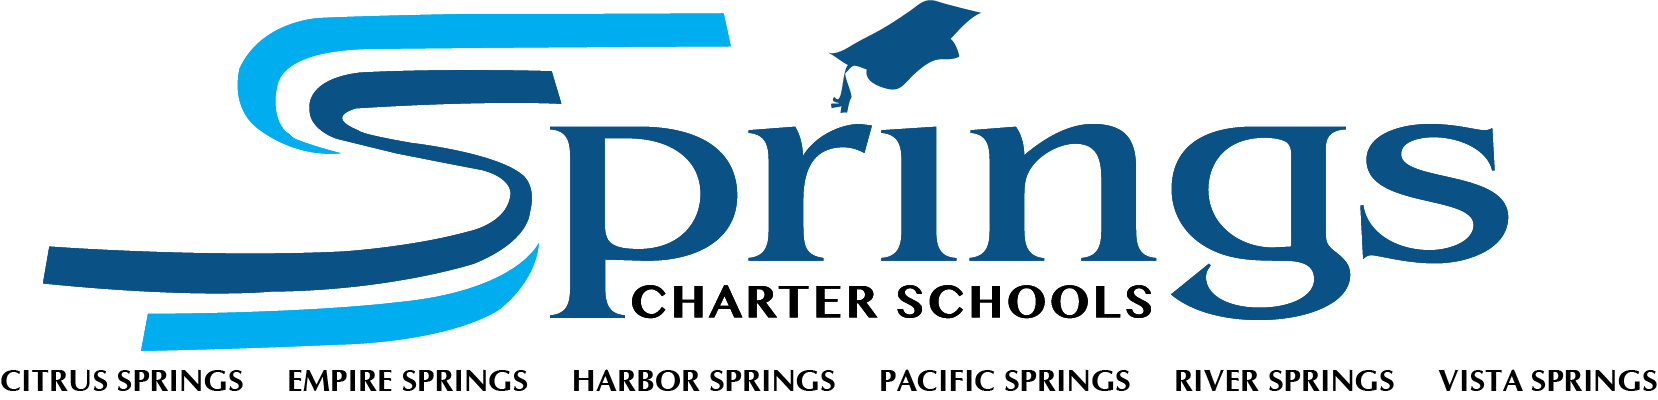 Springs Charter School logo